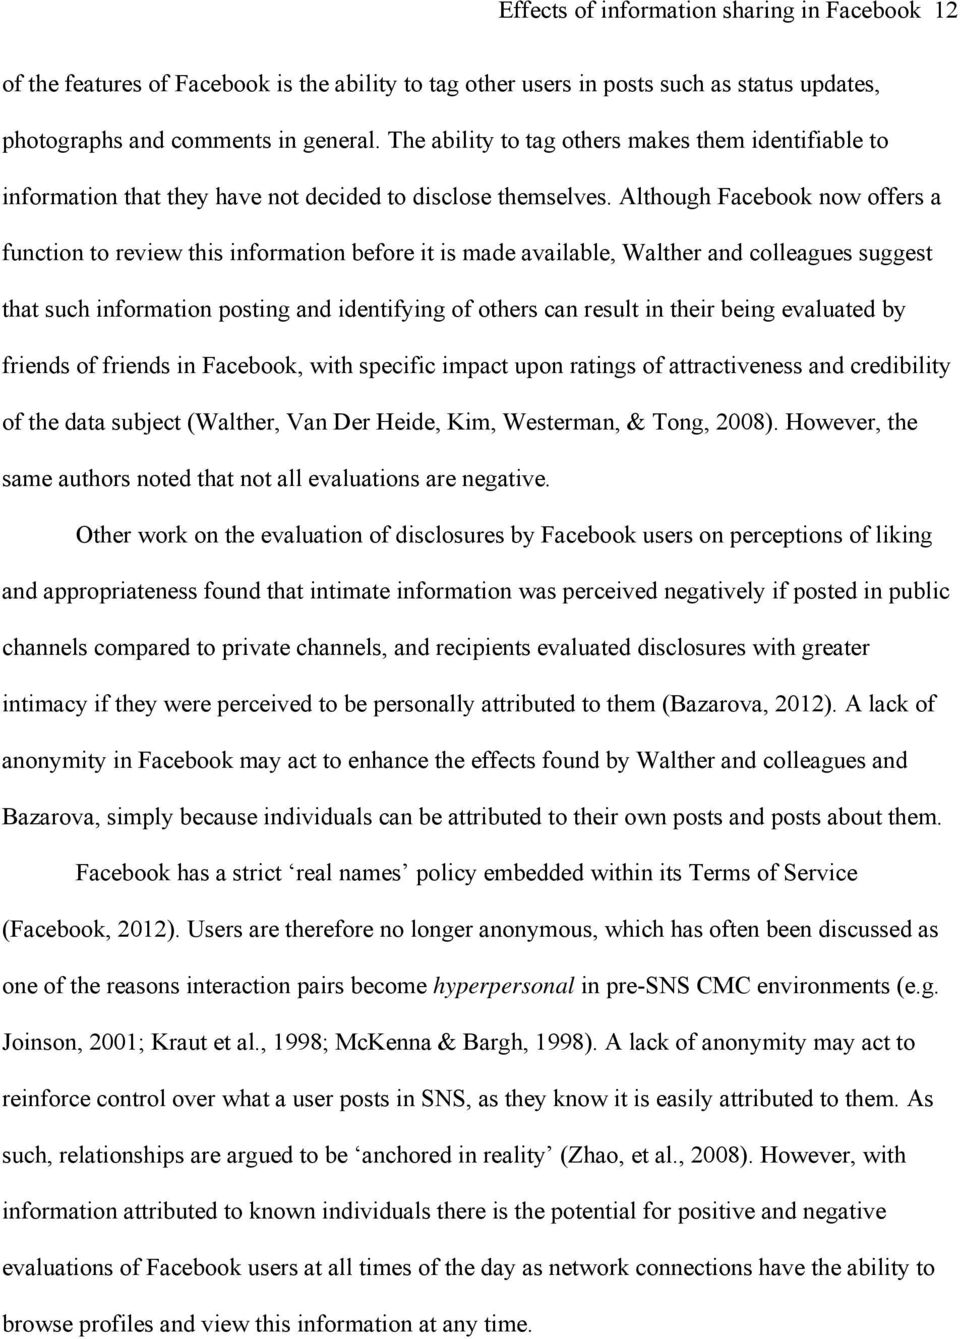 Although Facebook now offers a function to review this information before it is made available, Walther and colleagues suggest that such information posting and identifying of others can result in